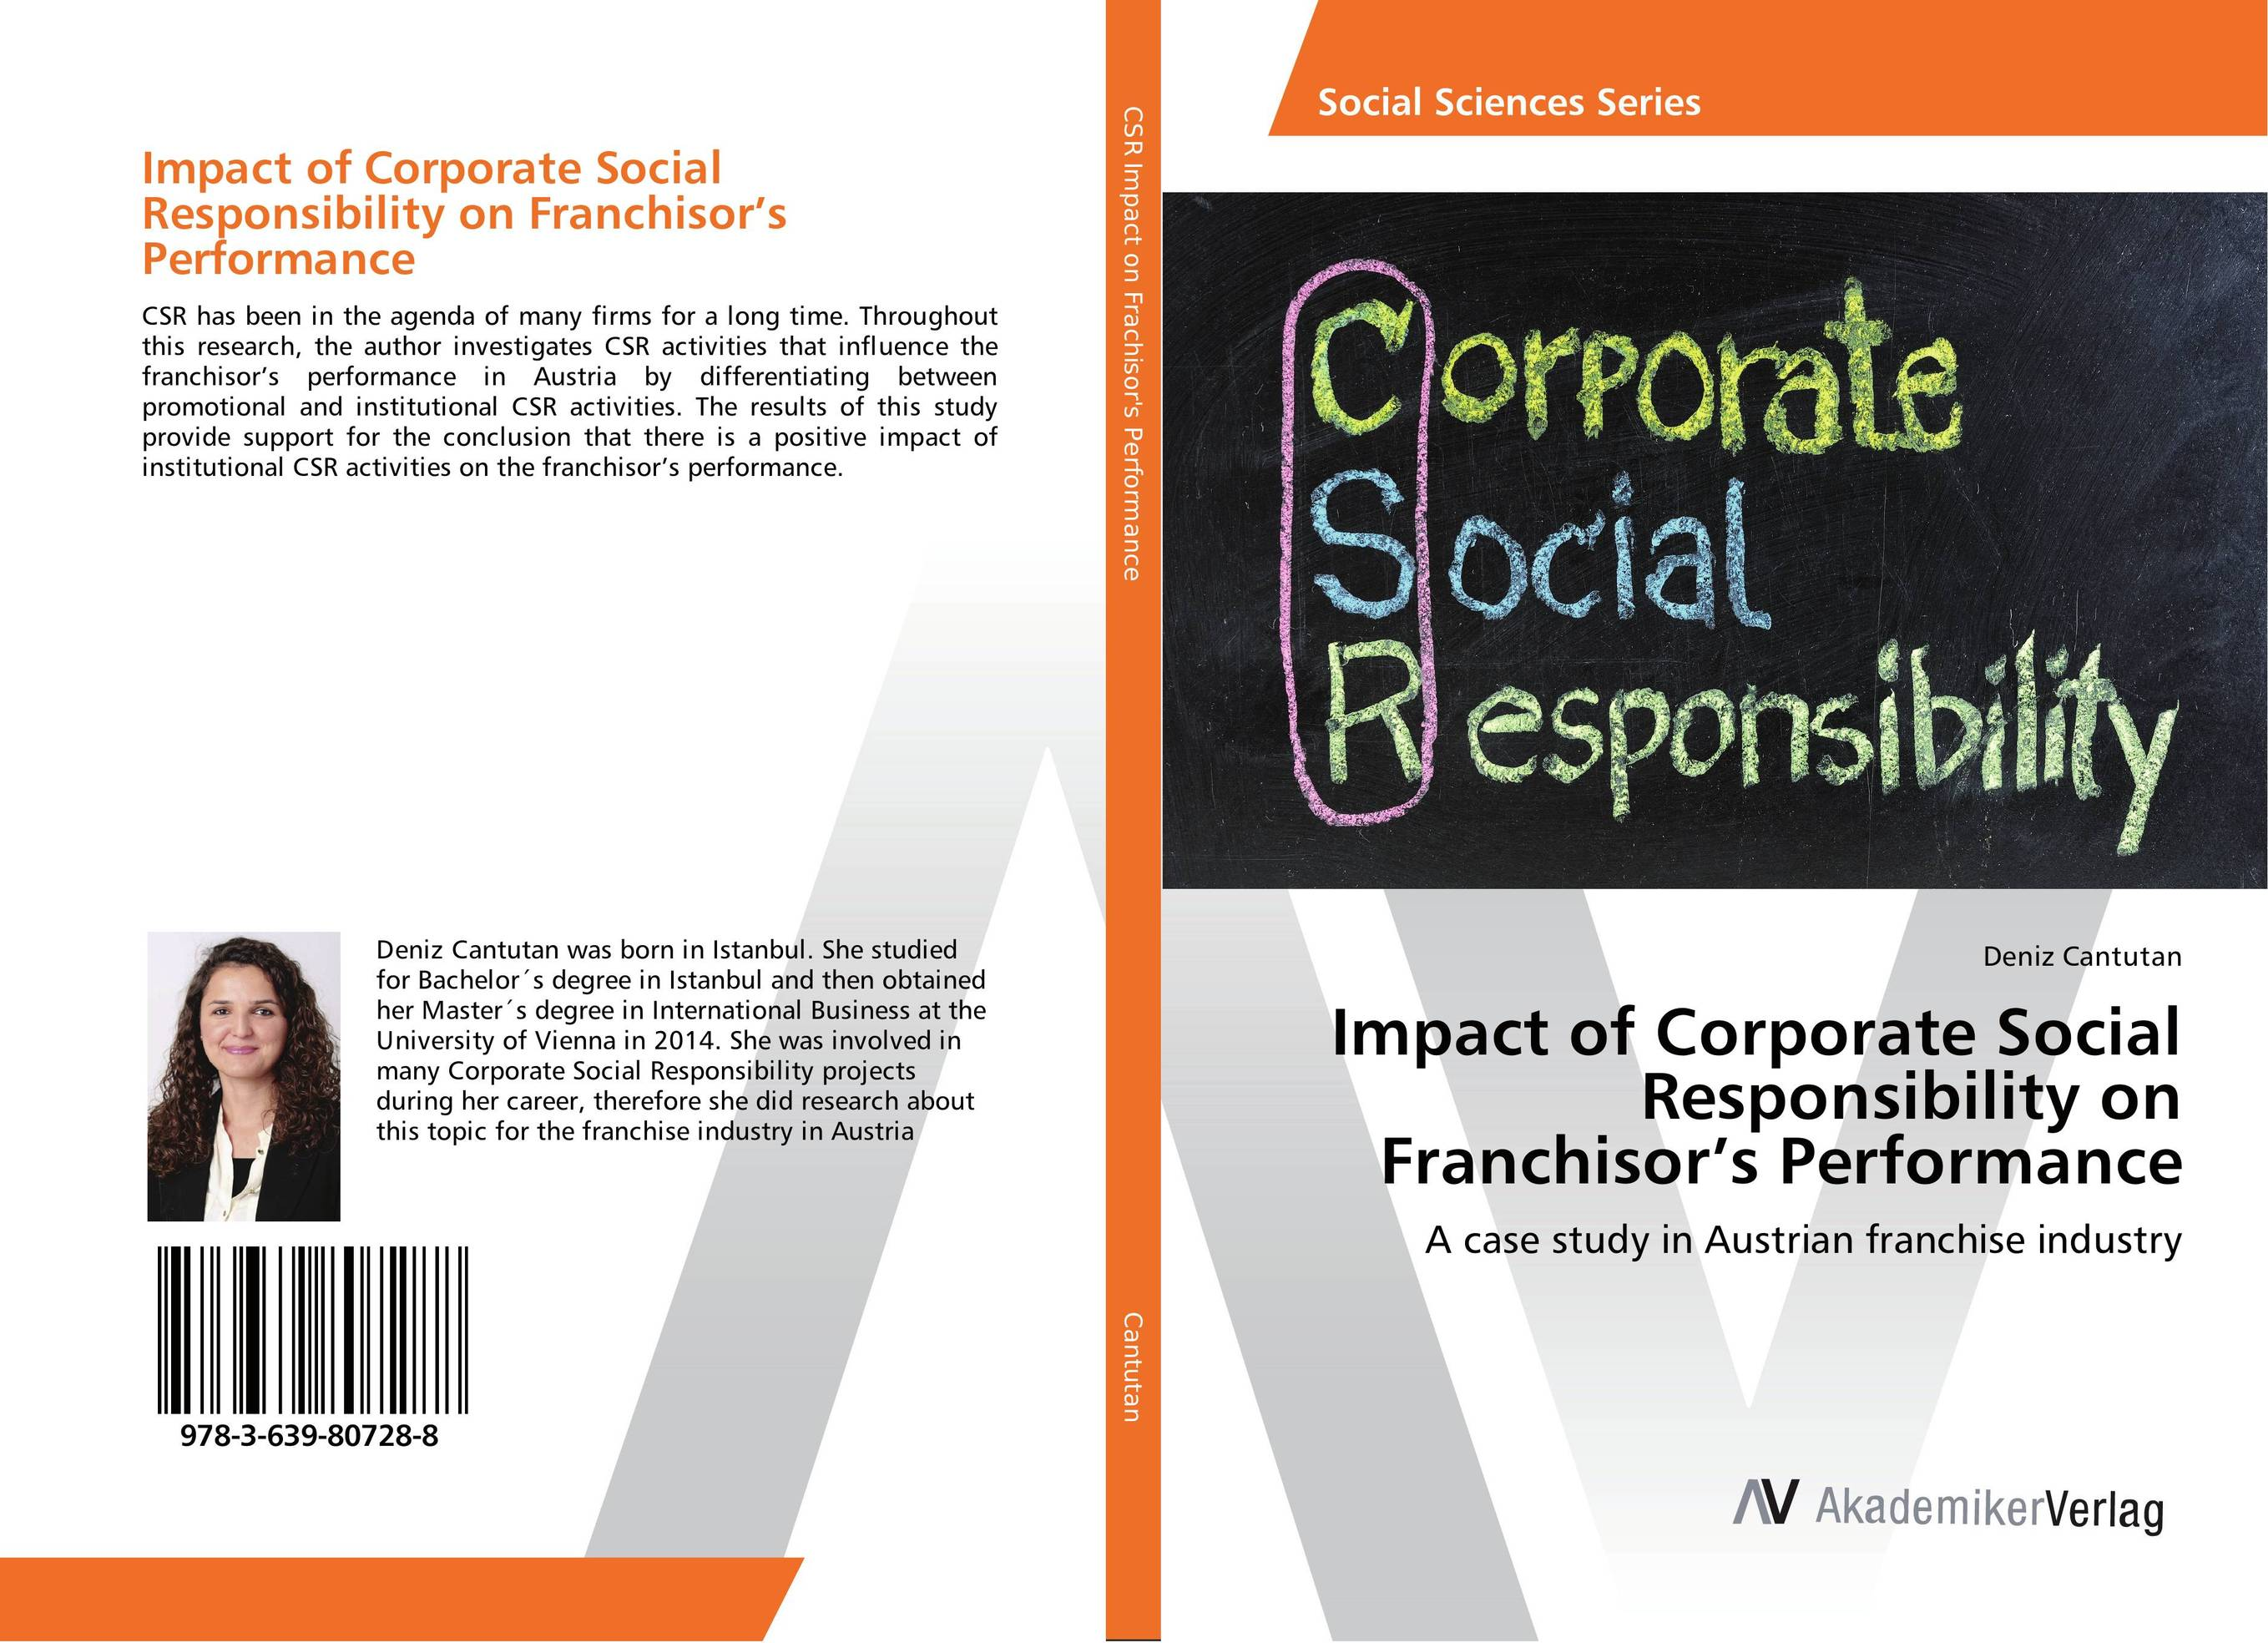 Impact of Corporate Social Responsibility on Franchisor's Performance predictive validity of kcpe performance on kcse performance